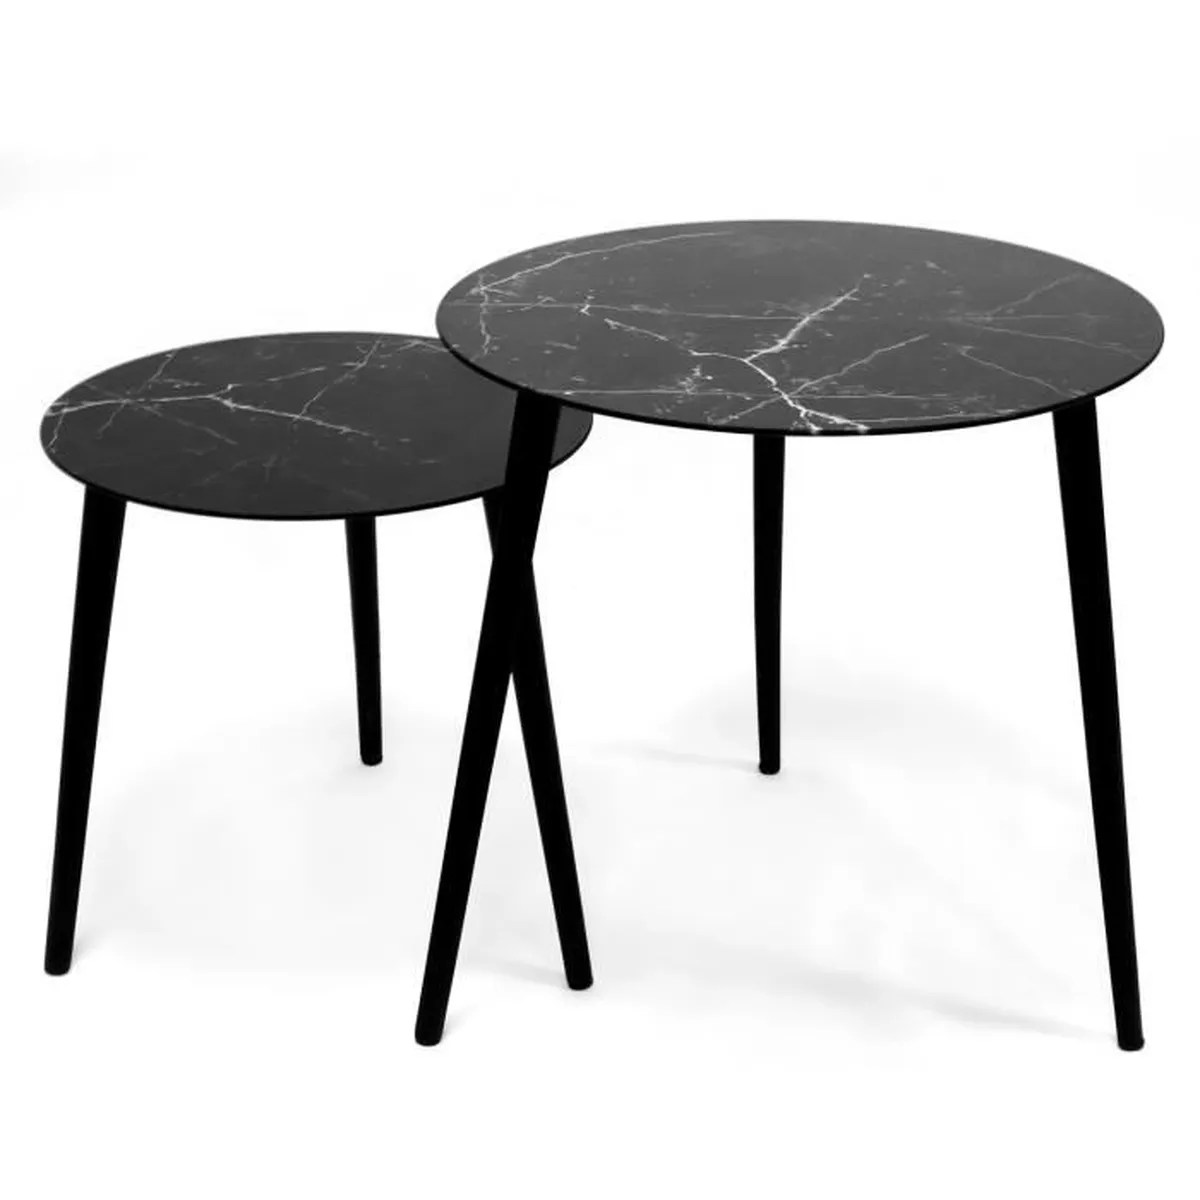 Grande Table Basse Pas Cher   Table Basse Relevable Pas Cher Table ... 6050f7ee09bb